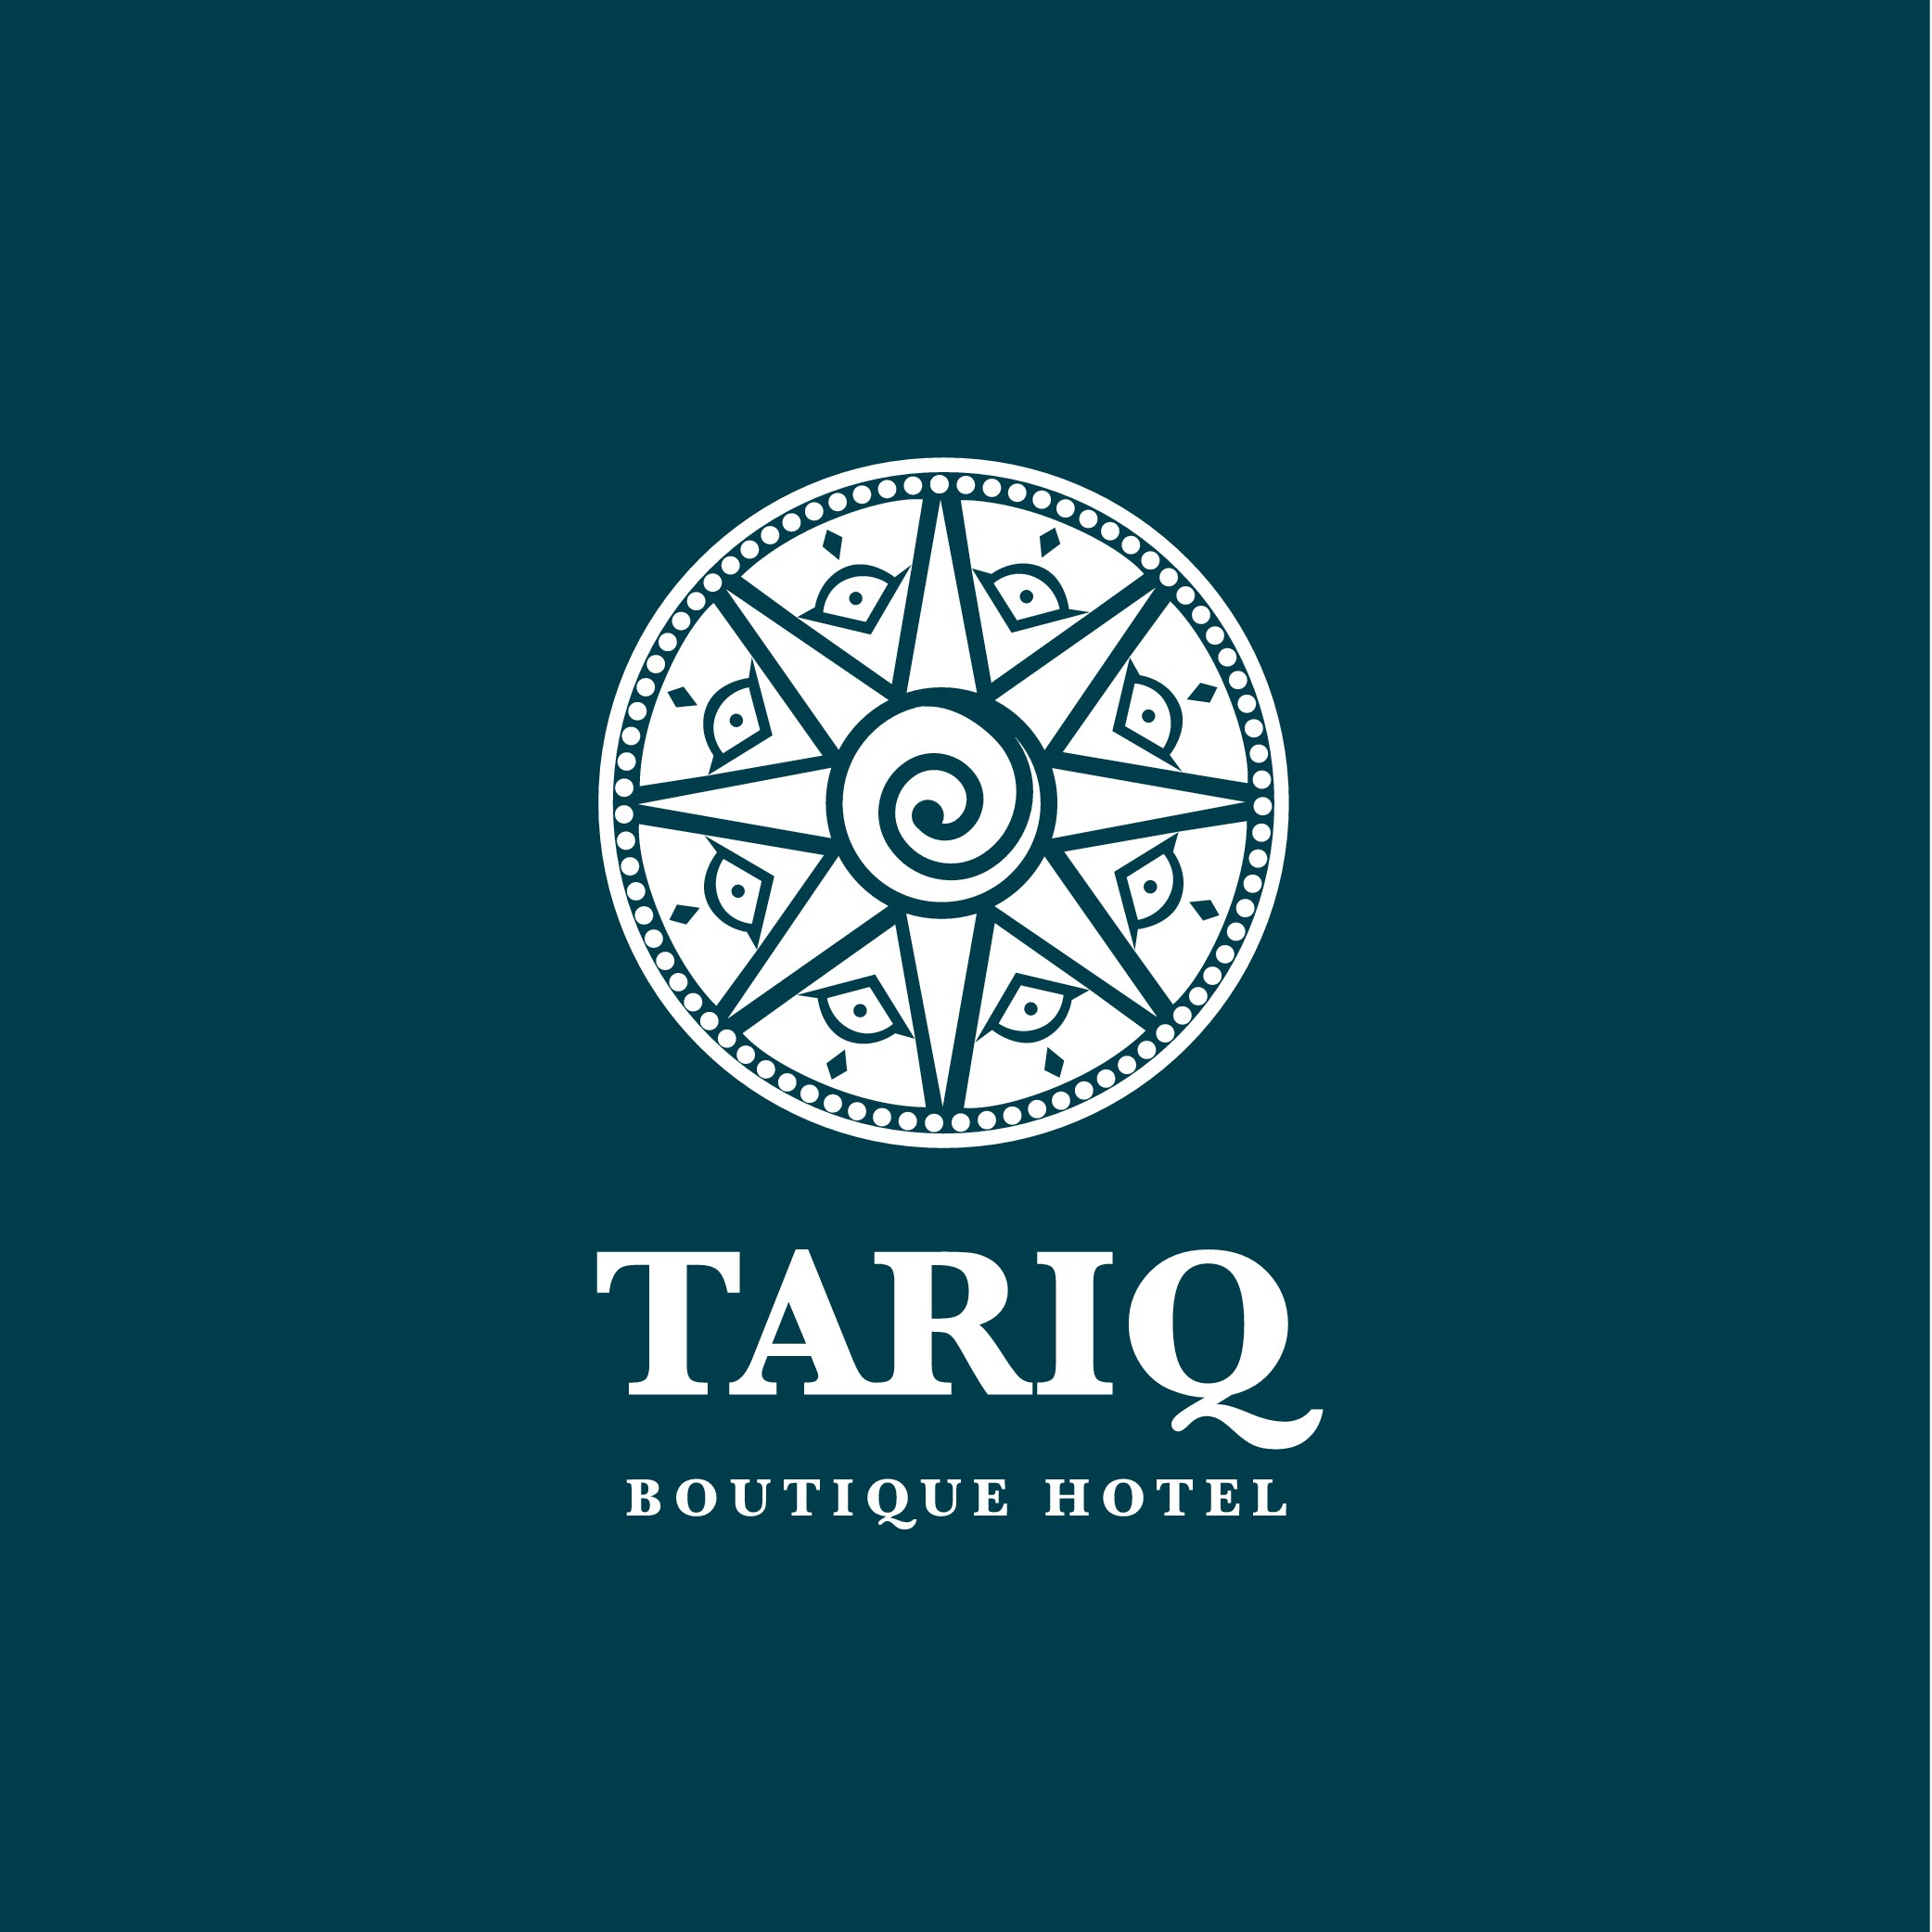 Design an artfull logo for an Art Boutique Hotel in Cusco Peru - mix comtemporary with ancient Inka